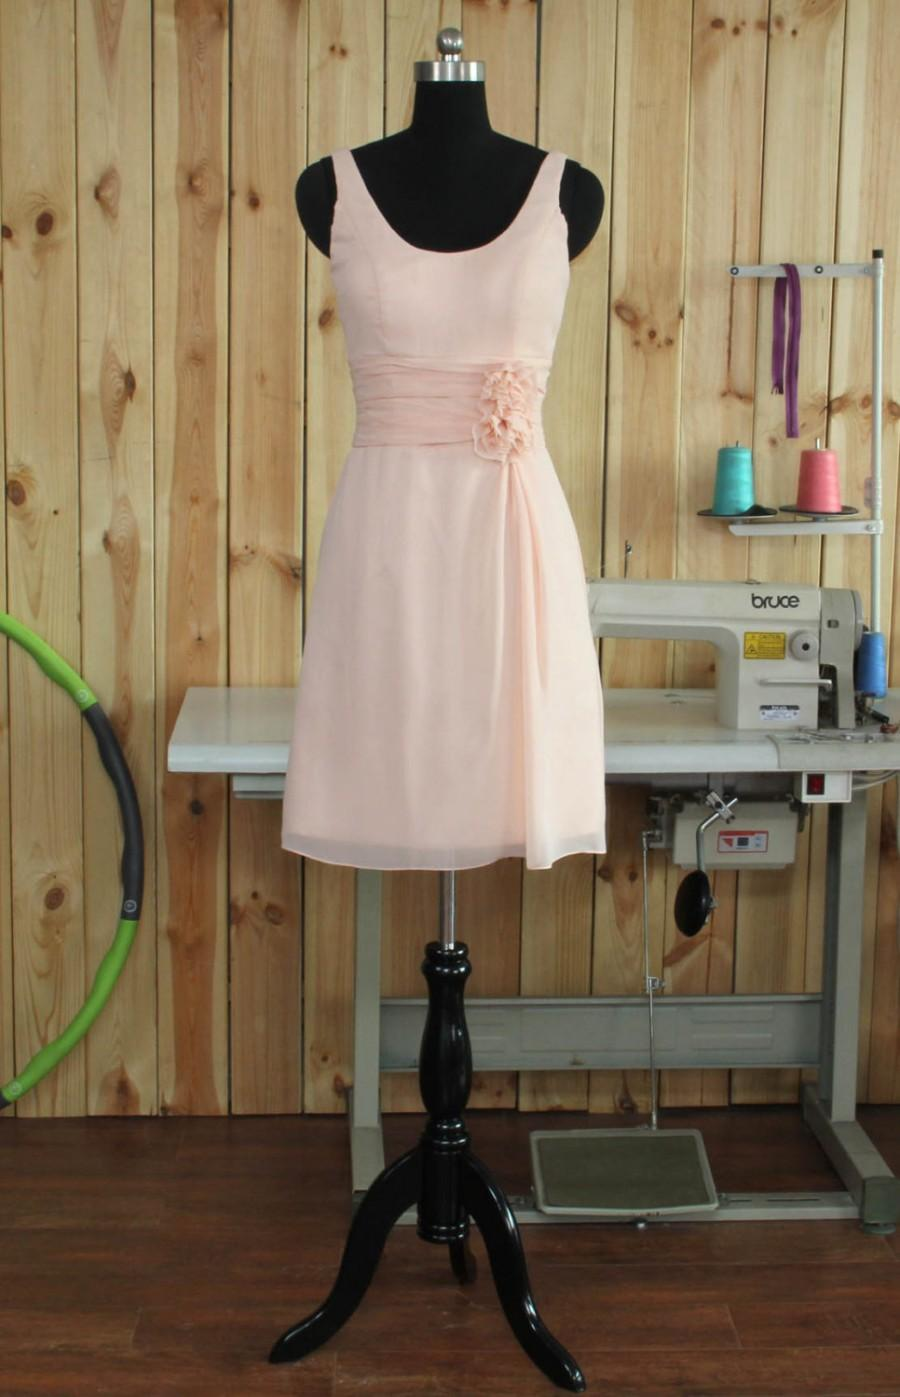 Nozze - Scoop Neck Pearl Pink Bridesmaid dress, Straps Wedding dress, Chiffon Party dress, Formal dress, Prom Dress,Woman Evening dress knee length